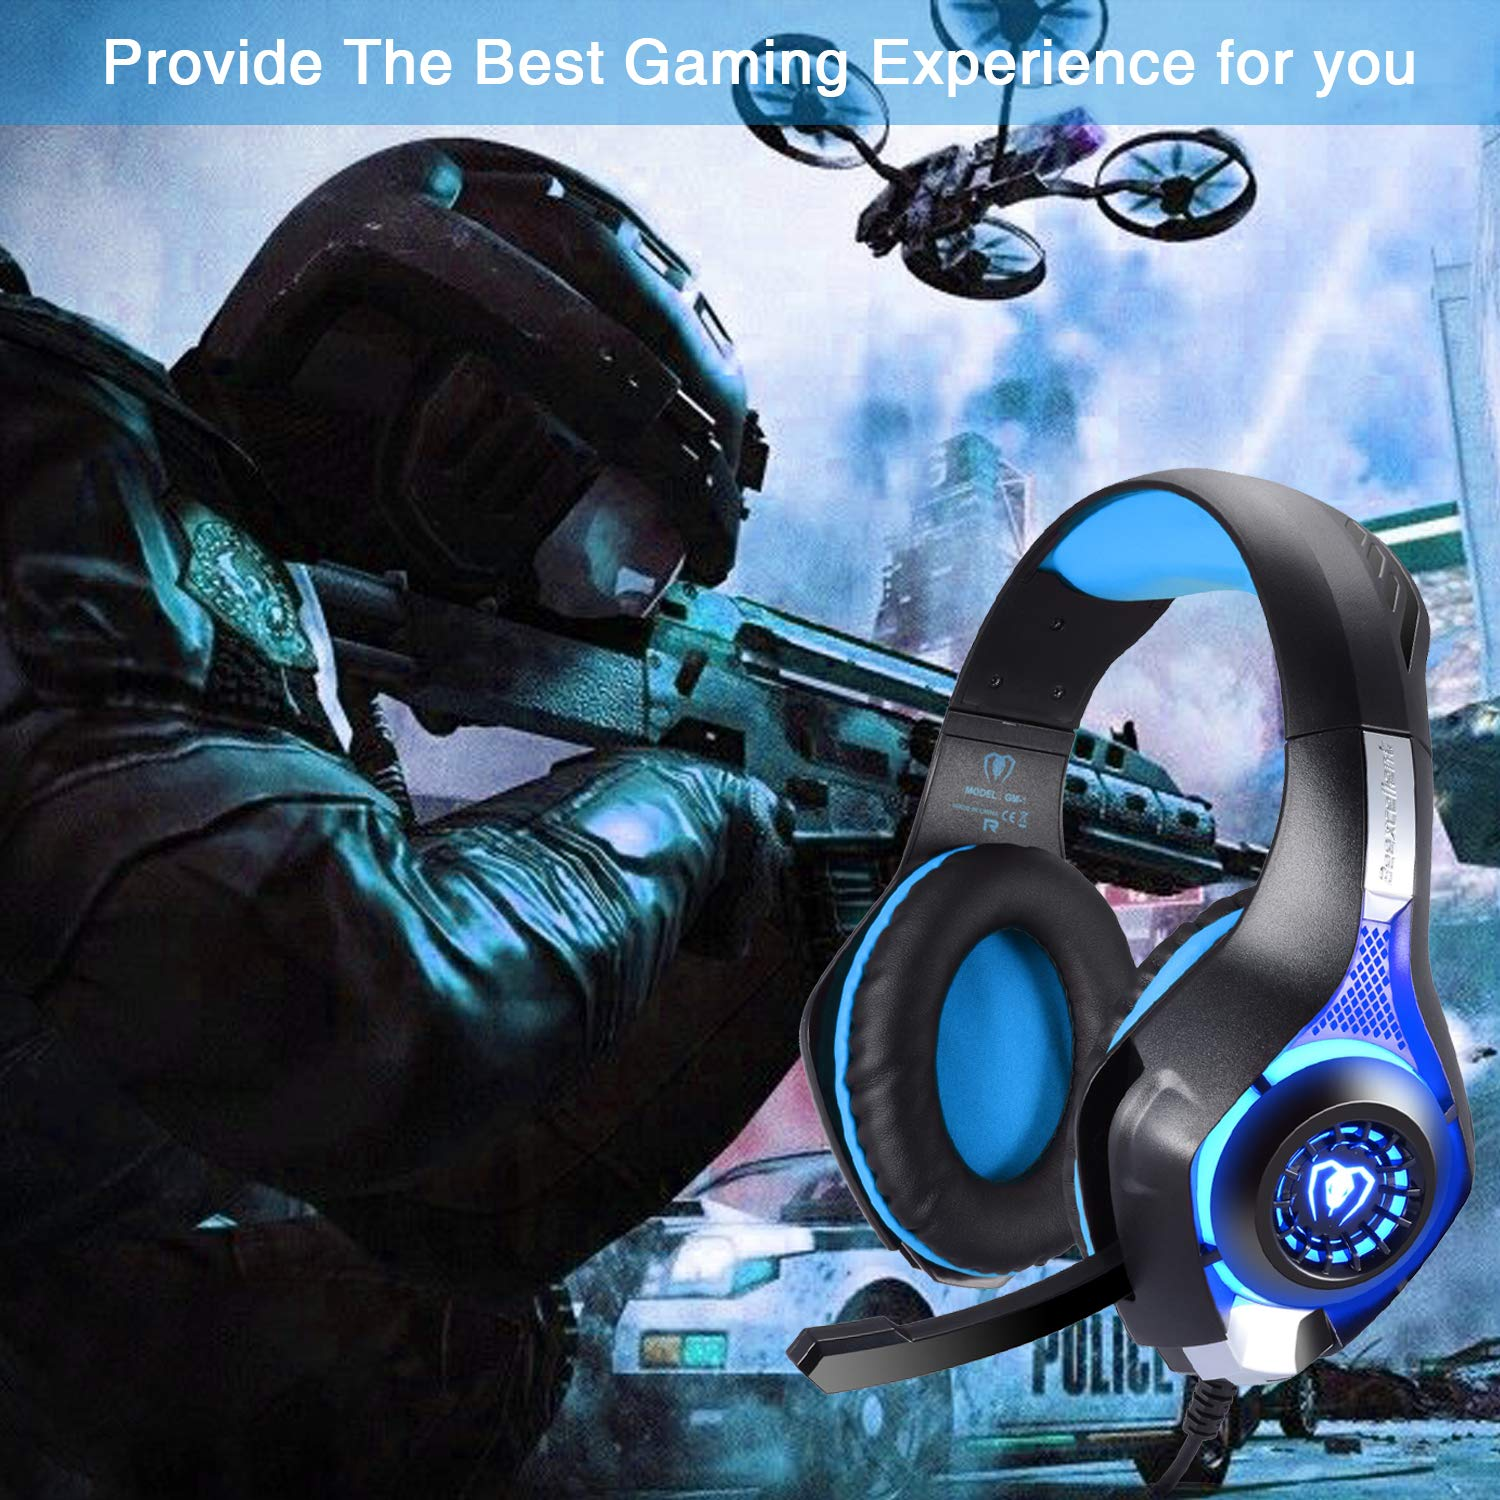 PC Laptop Green BlueFire Stereo Gaming Headset for Playstation 4 PS4 Over-Ear Headphones with Mic and LED Lights for Xbox One